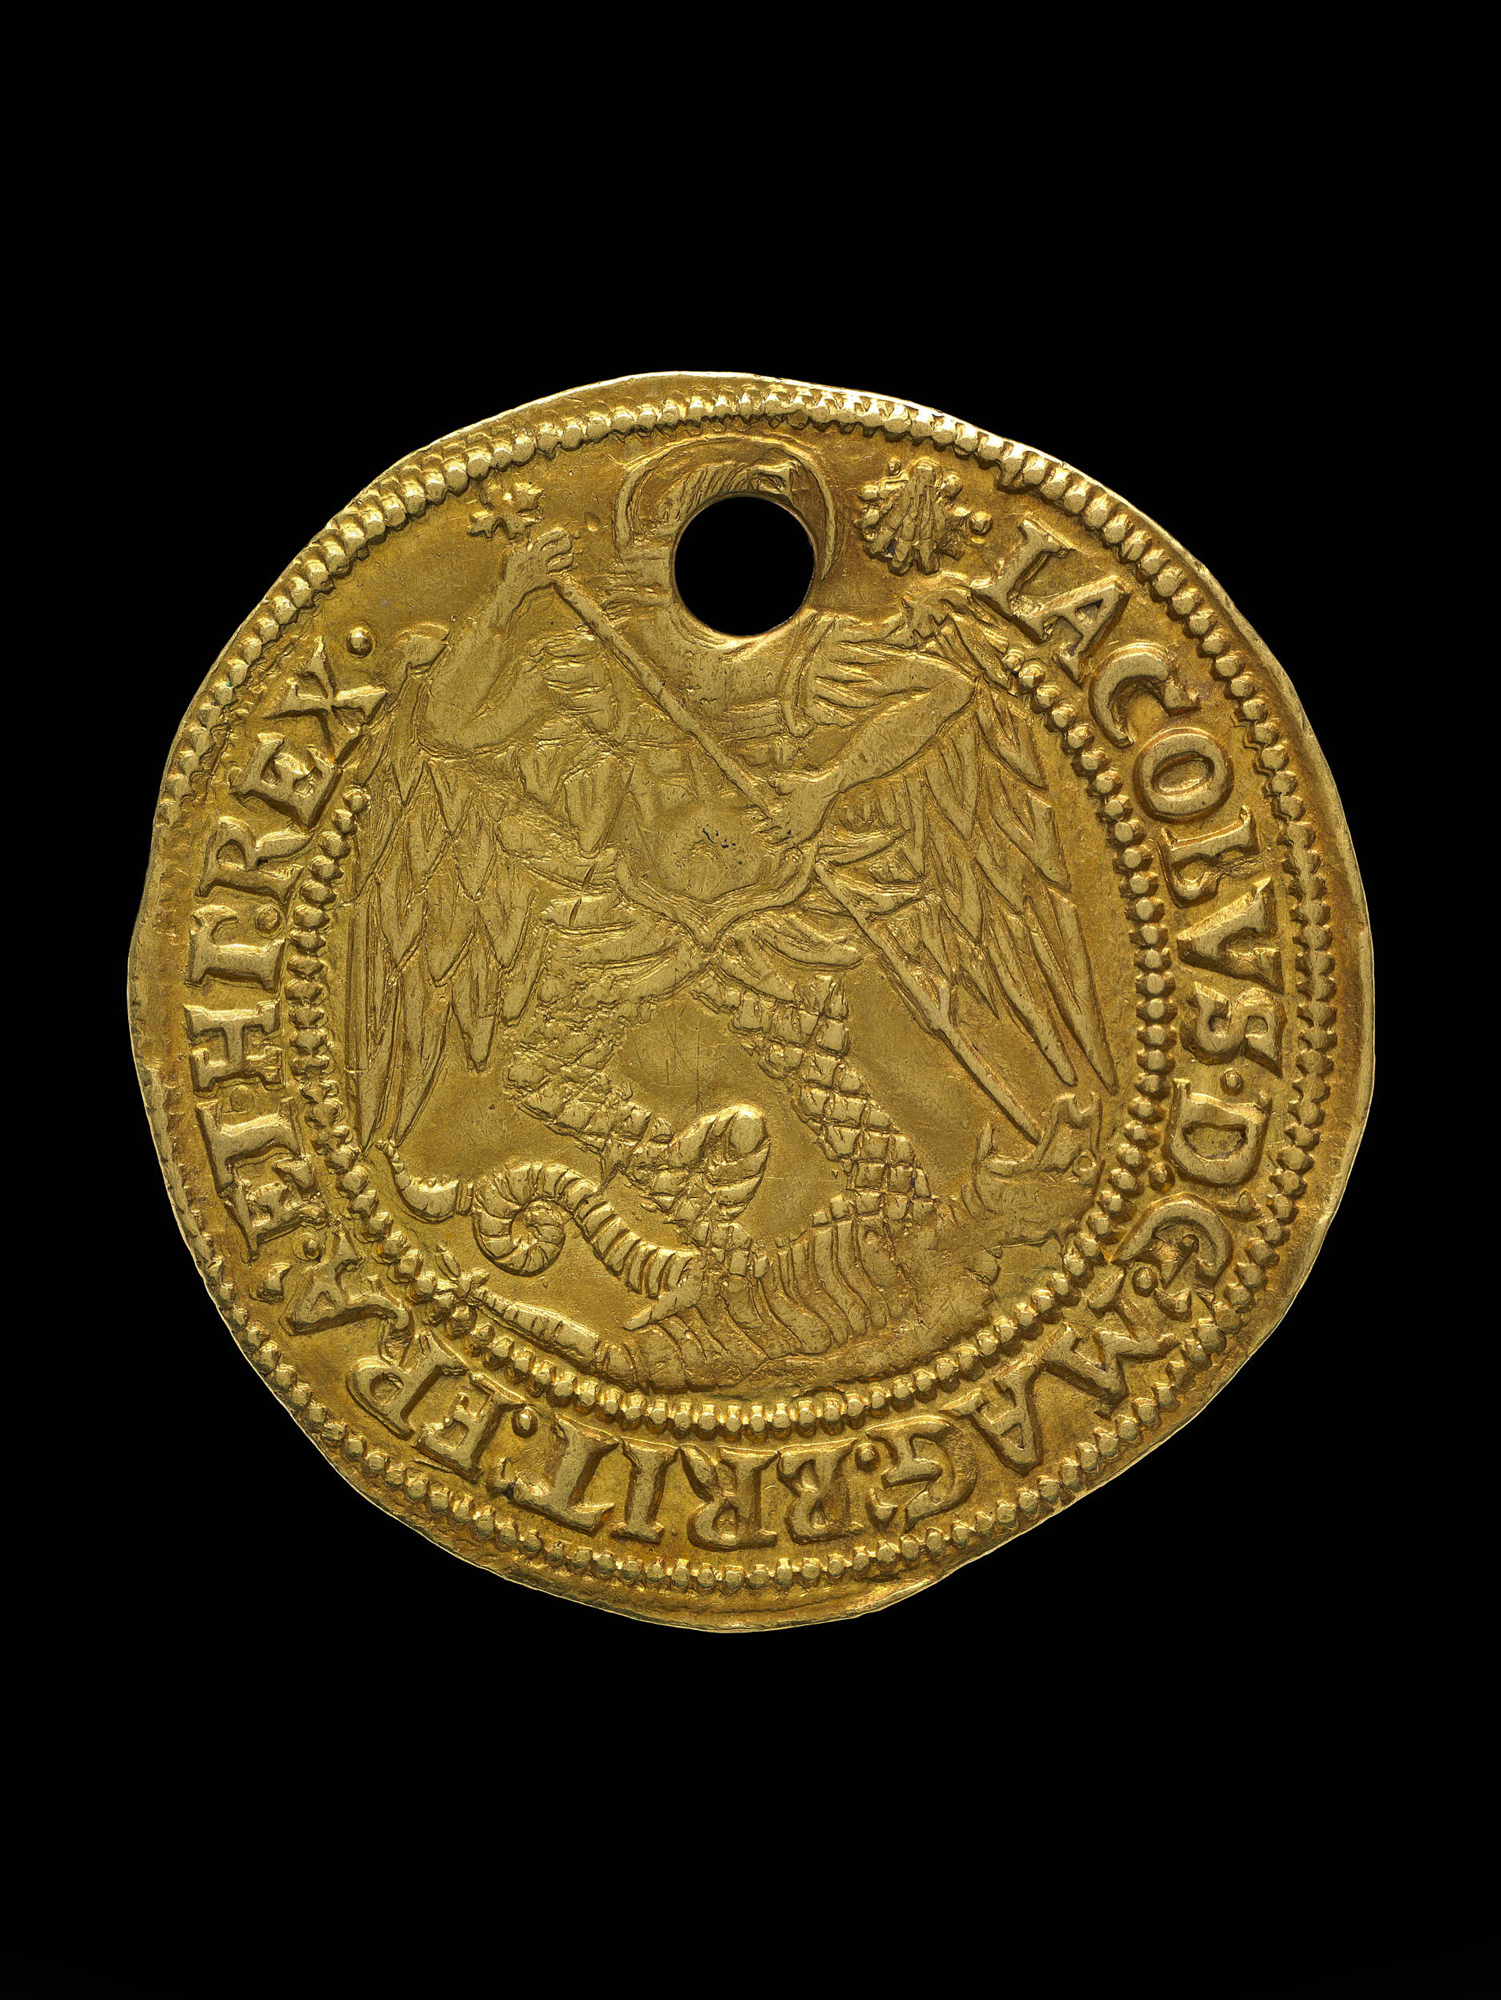 Gold coin used in the ceremony of touching for the king's evil